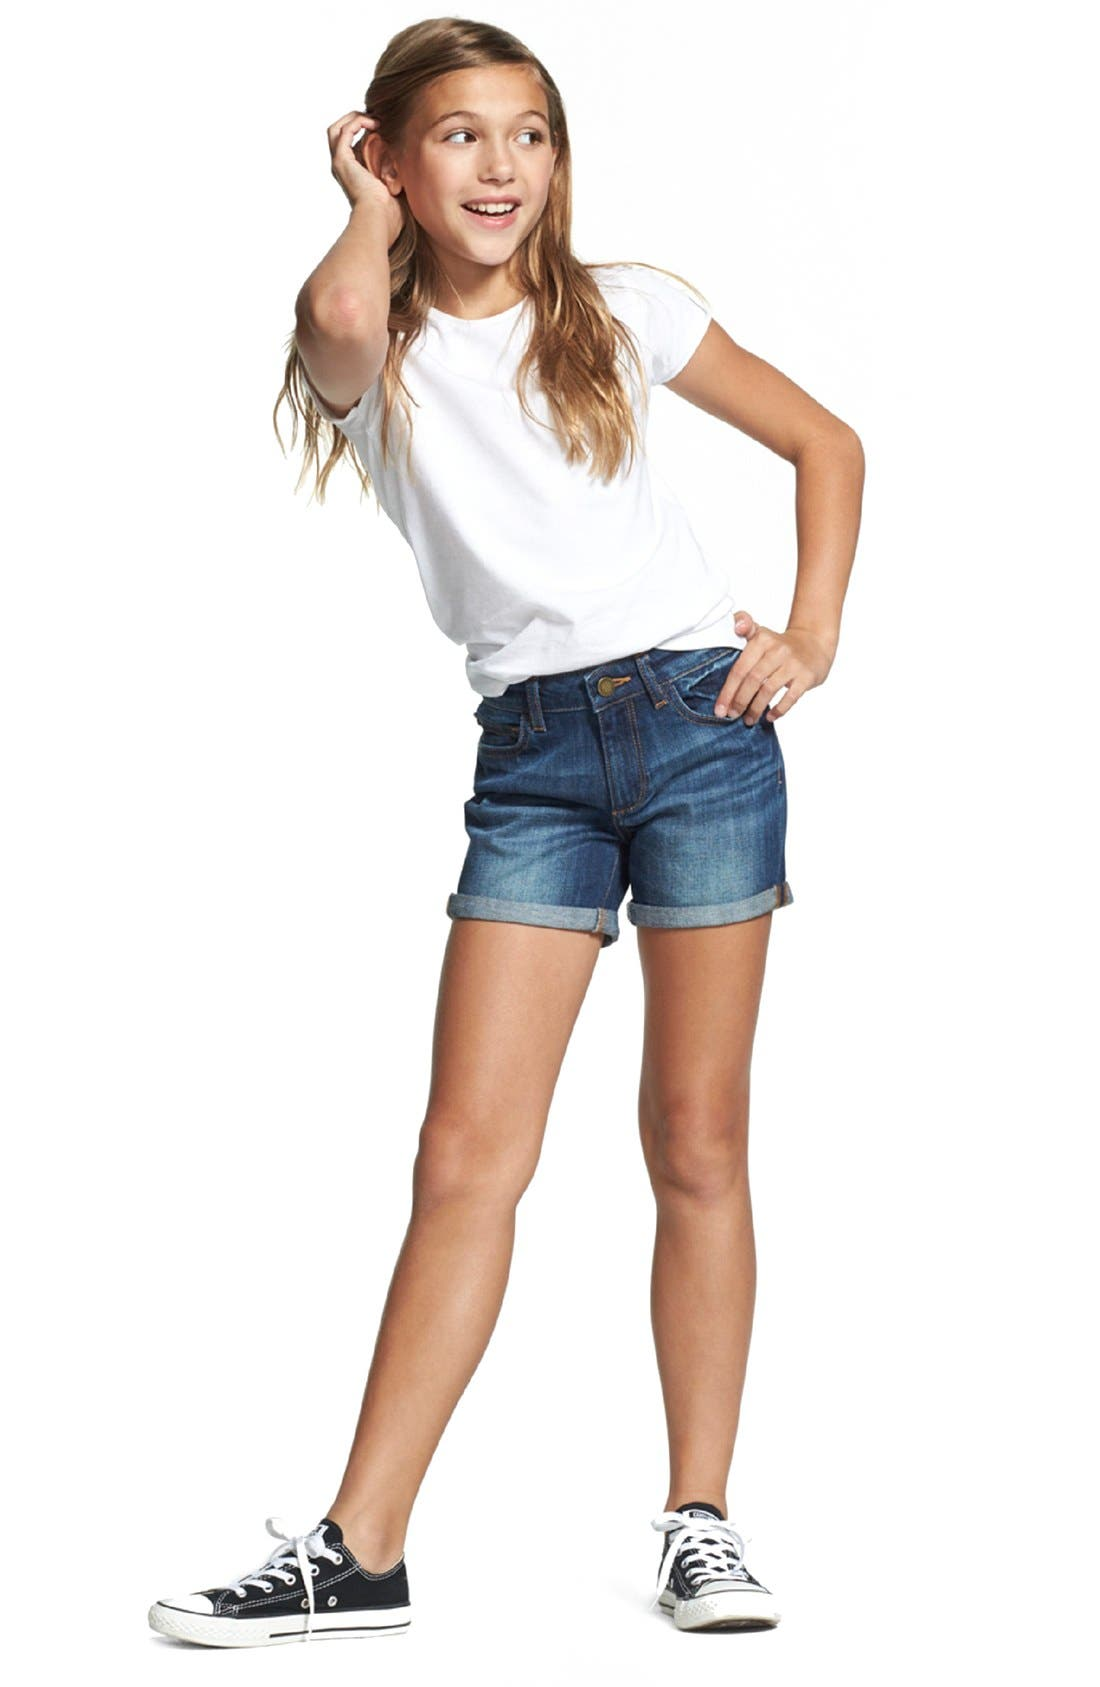 girls wearing denim shorts wwwpixsharkcom images